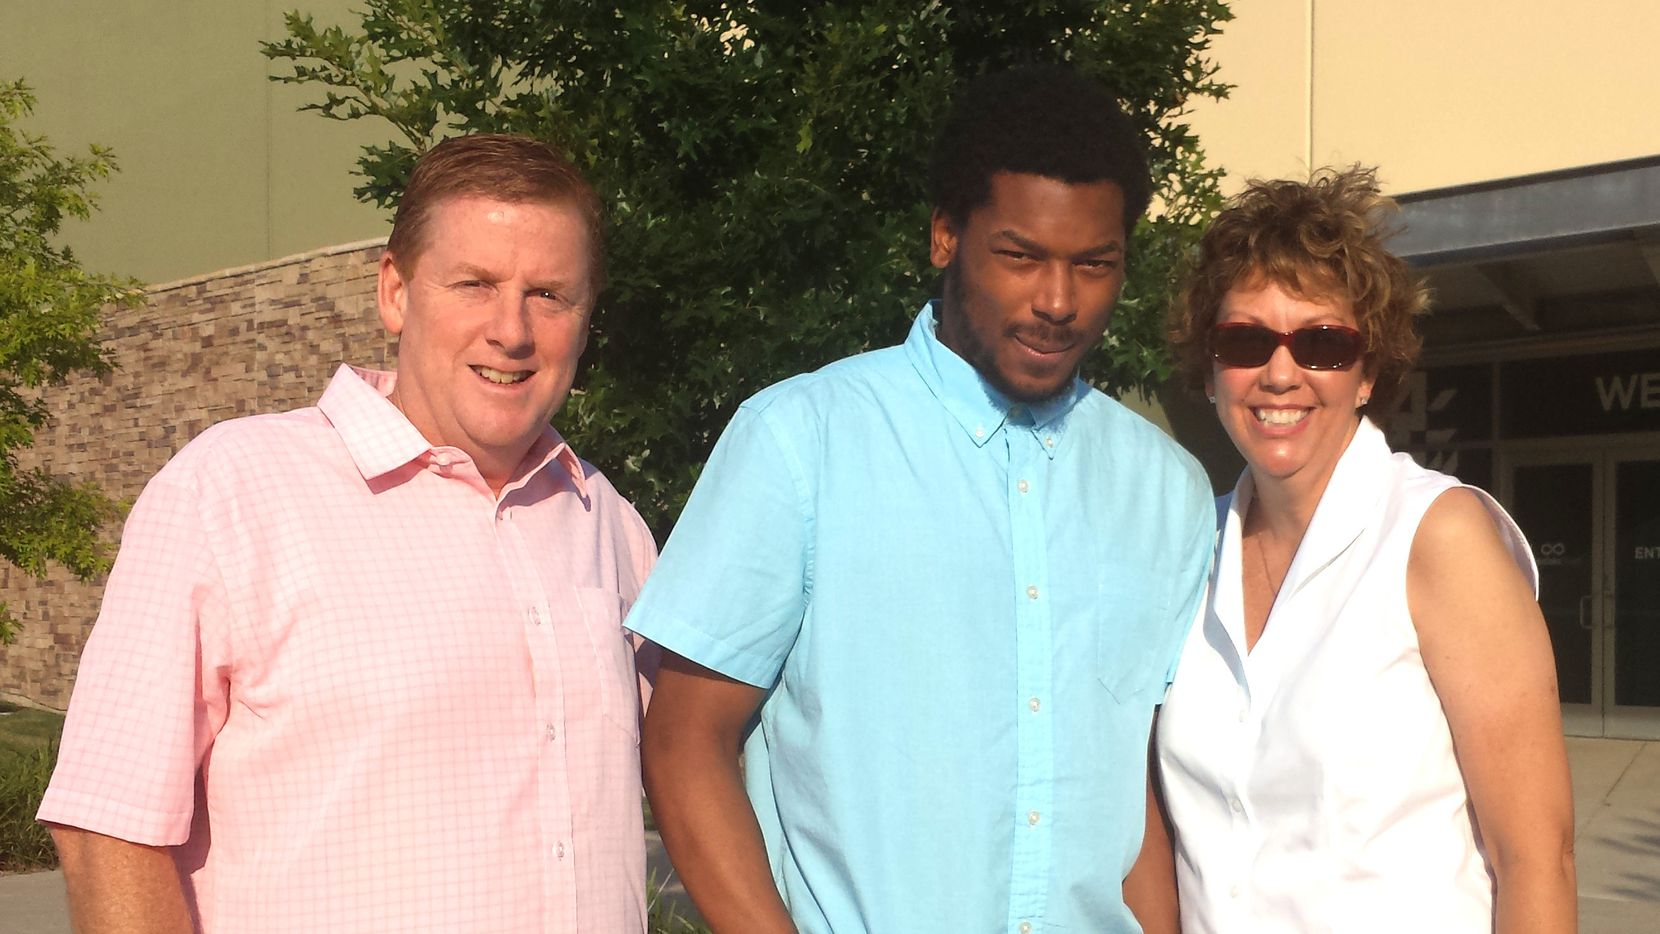 Dave and Lisa Stephenson pose with Thomas Johnson at their church in Plano in July 2014. Thomas Johnson, former Skyline and Texas A&M football star stayed as a guest in their home. Dave and his wife tried to rehabilitate Johnson before the murder of David Stevens while he was running at White Rock Lake on Oct. 12, 2015. (Photo Courtesy of Stephenson Family)